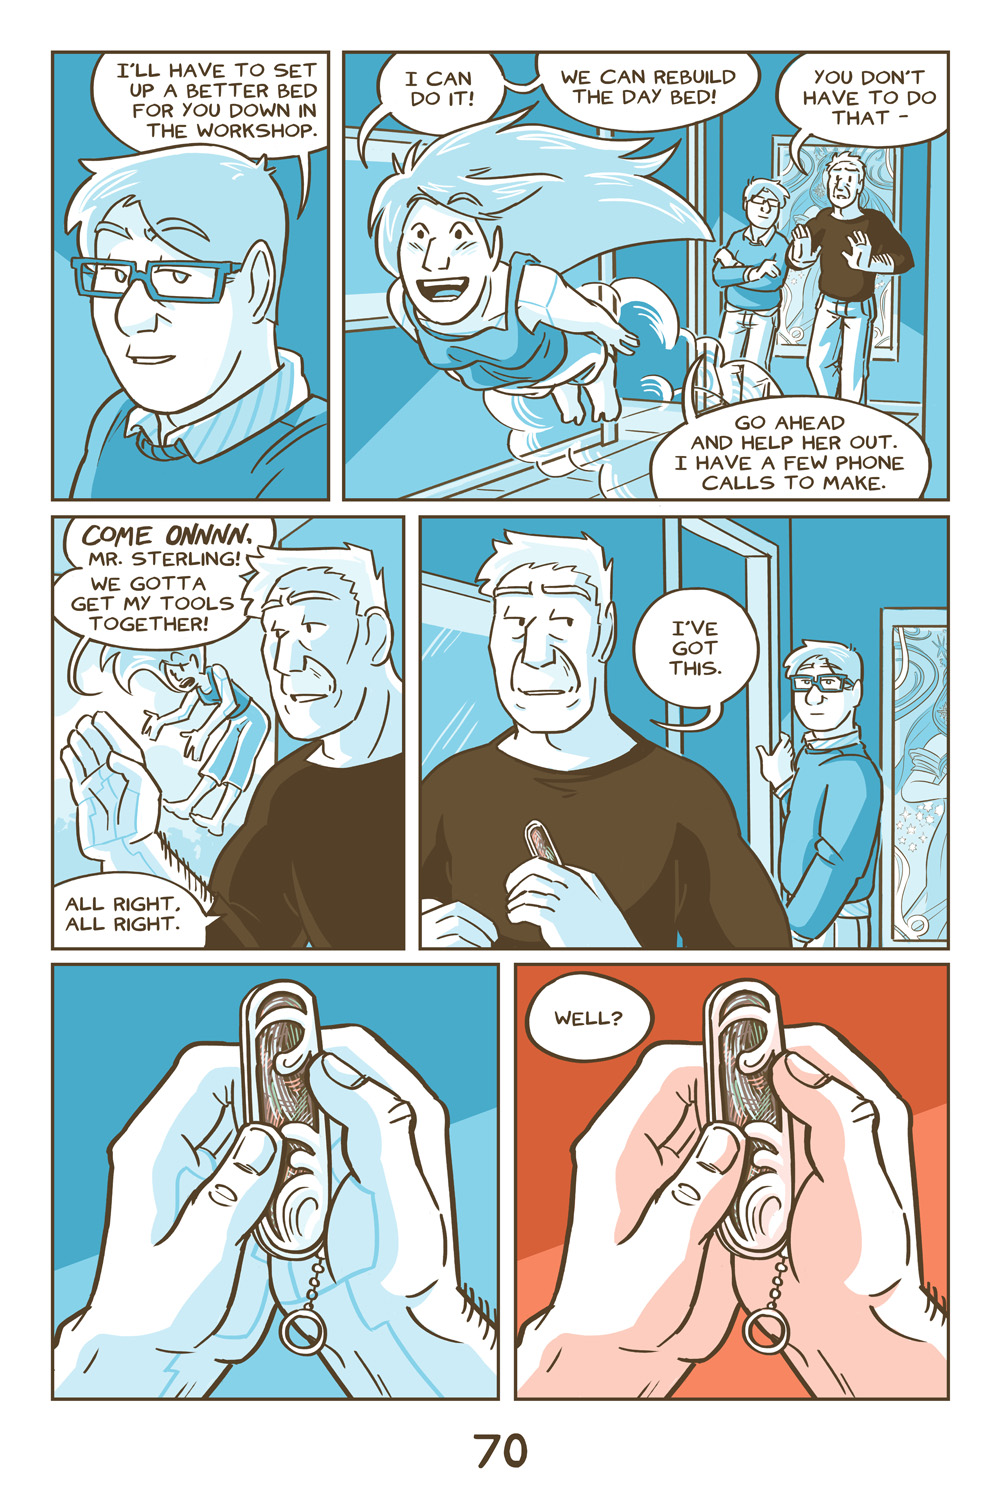 Chapter 2, Page 70